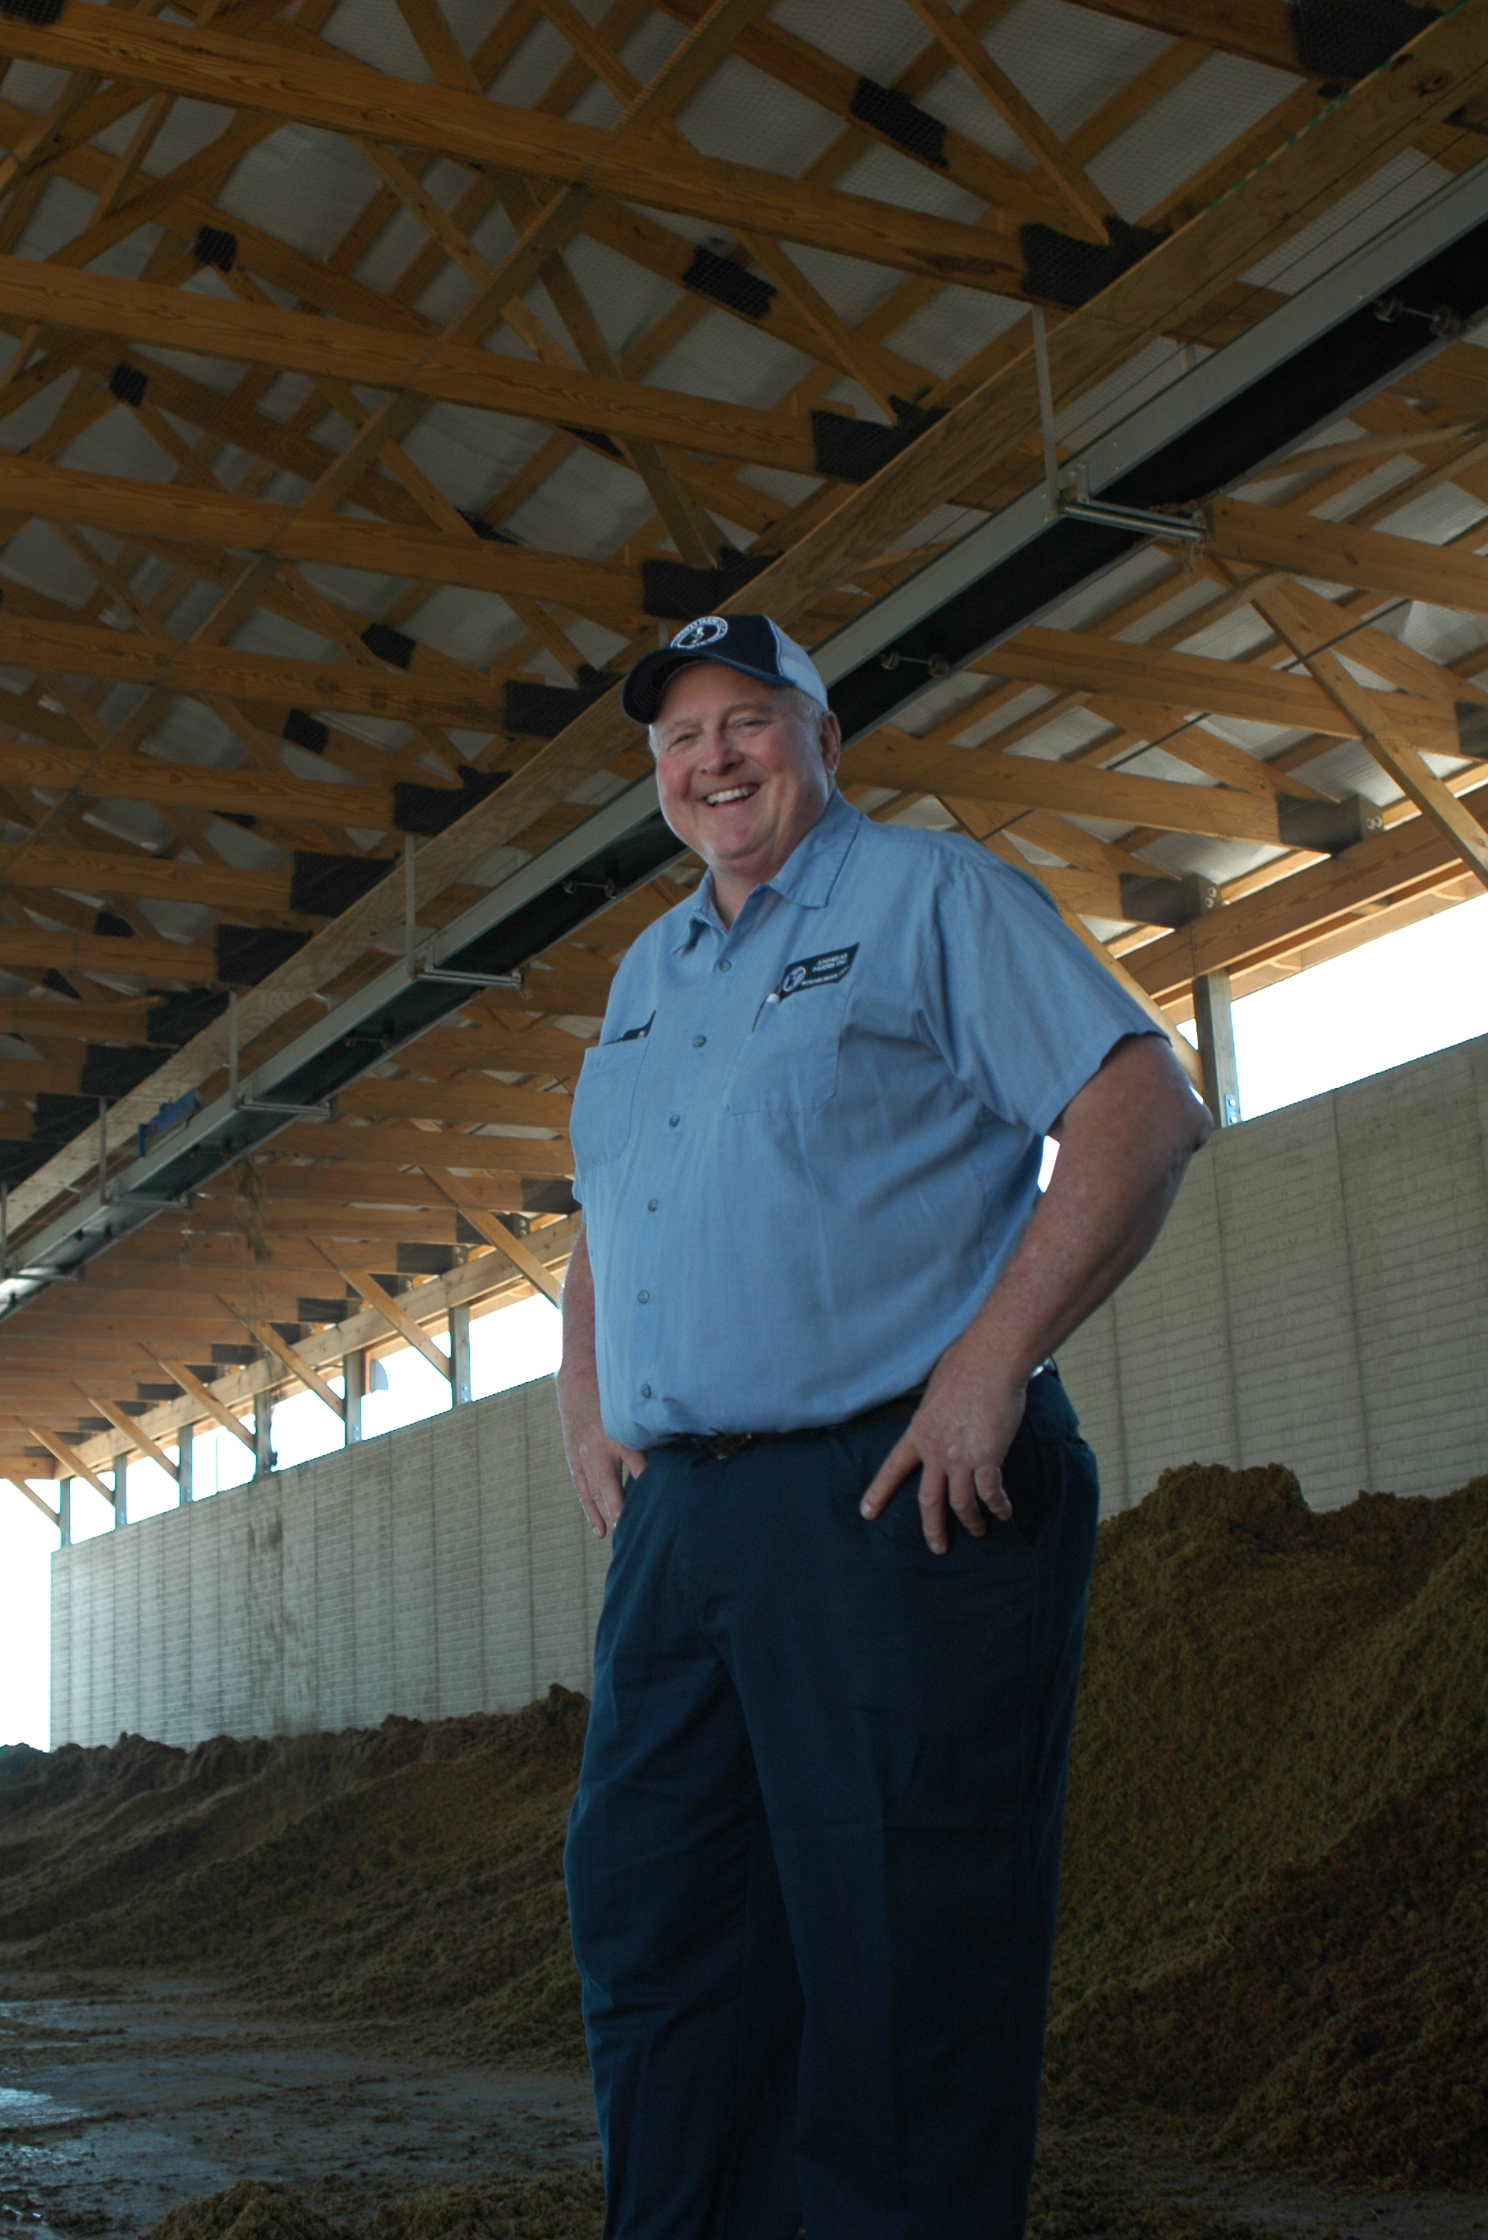 Ohio farmer Dan Andreas strives to improve the water quality in his watershed.